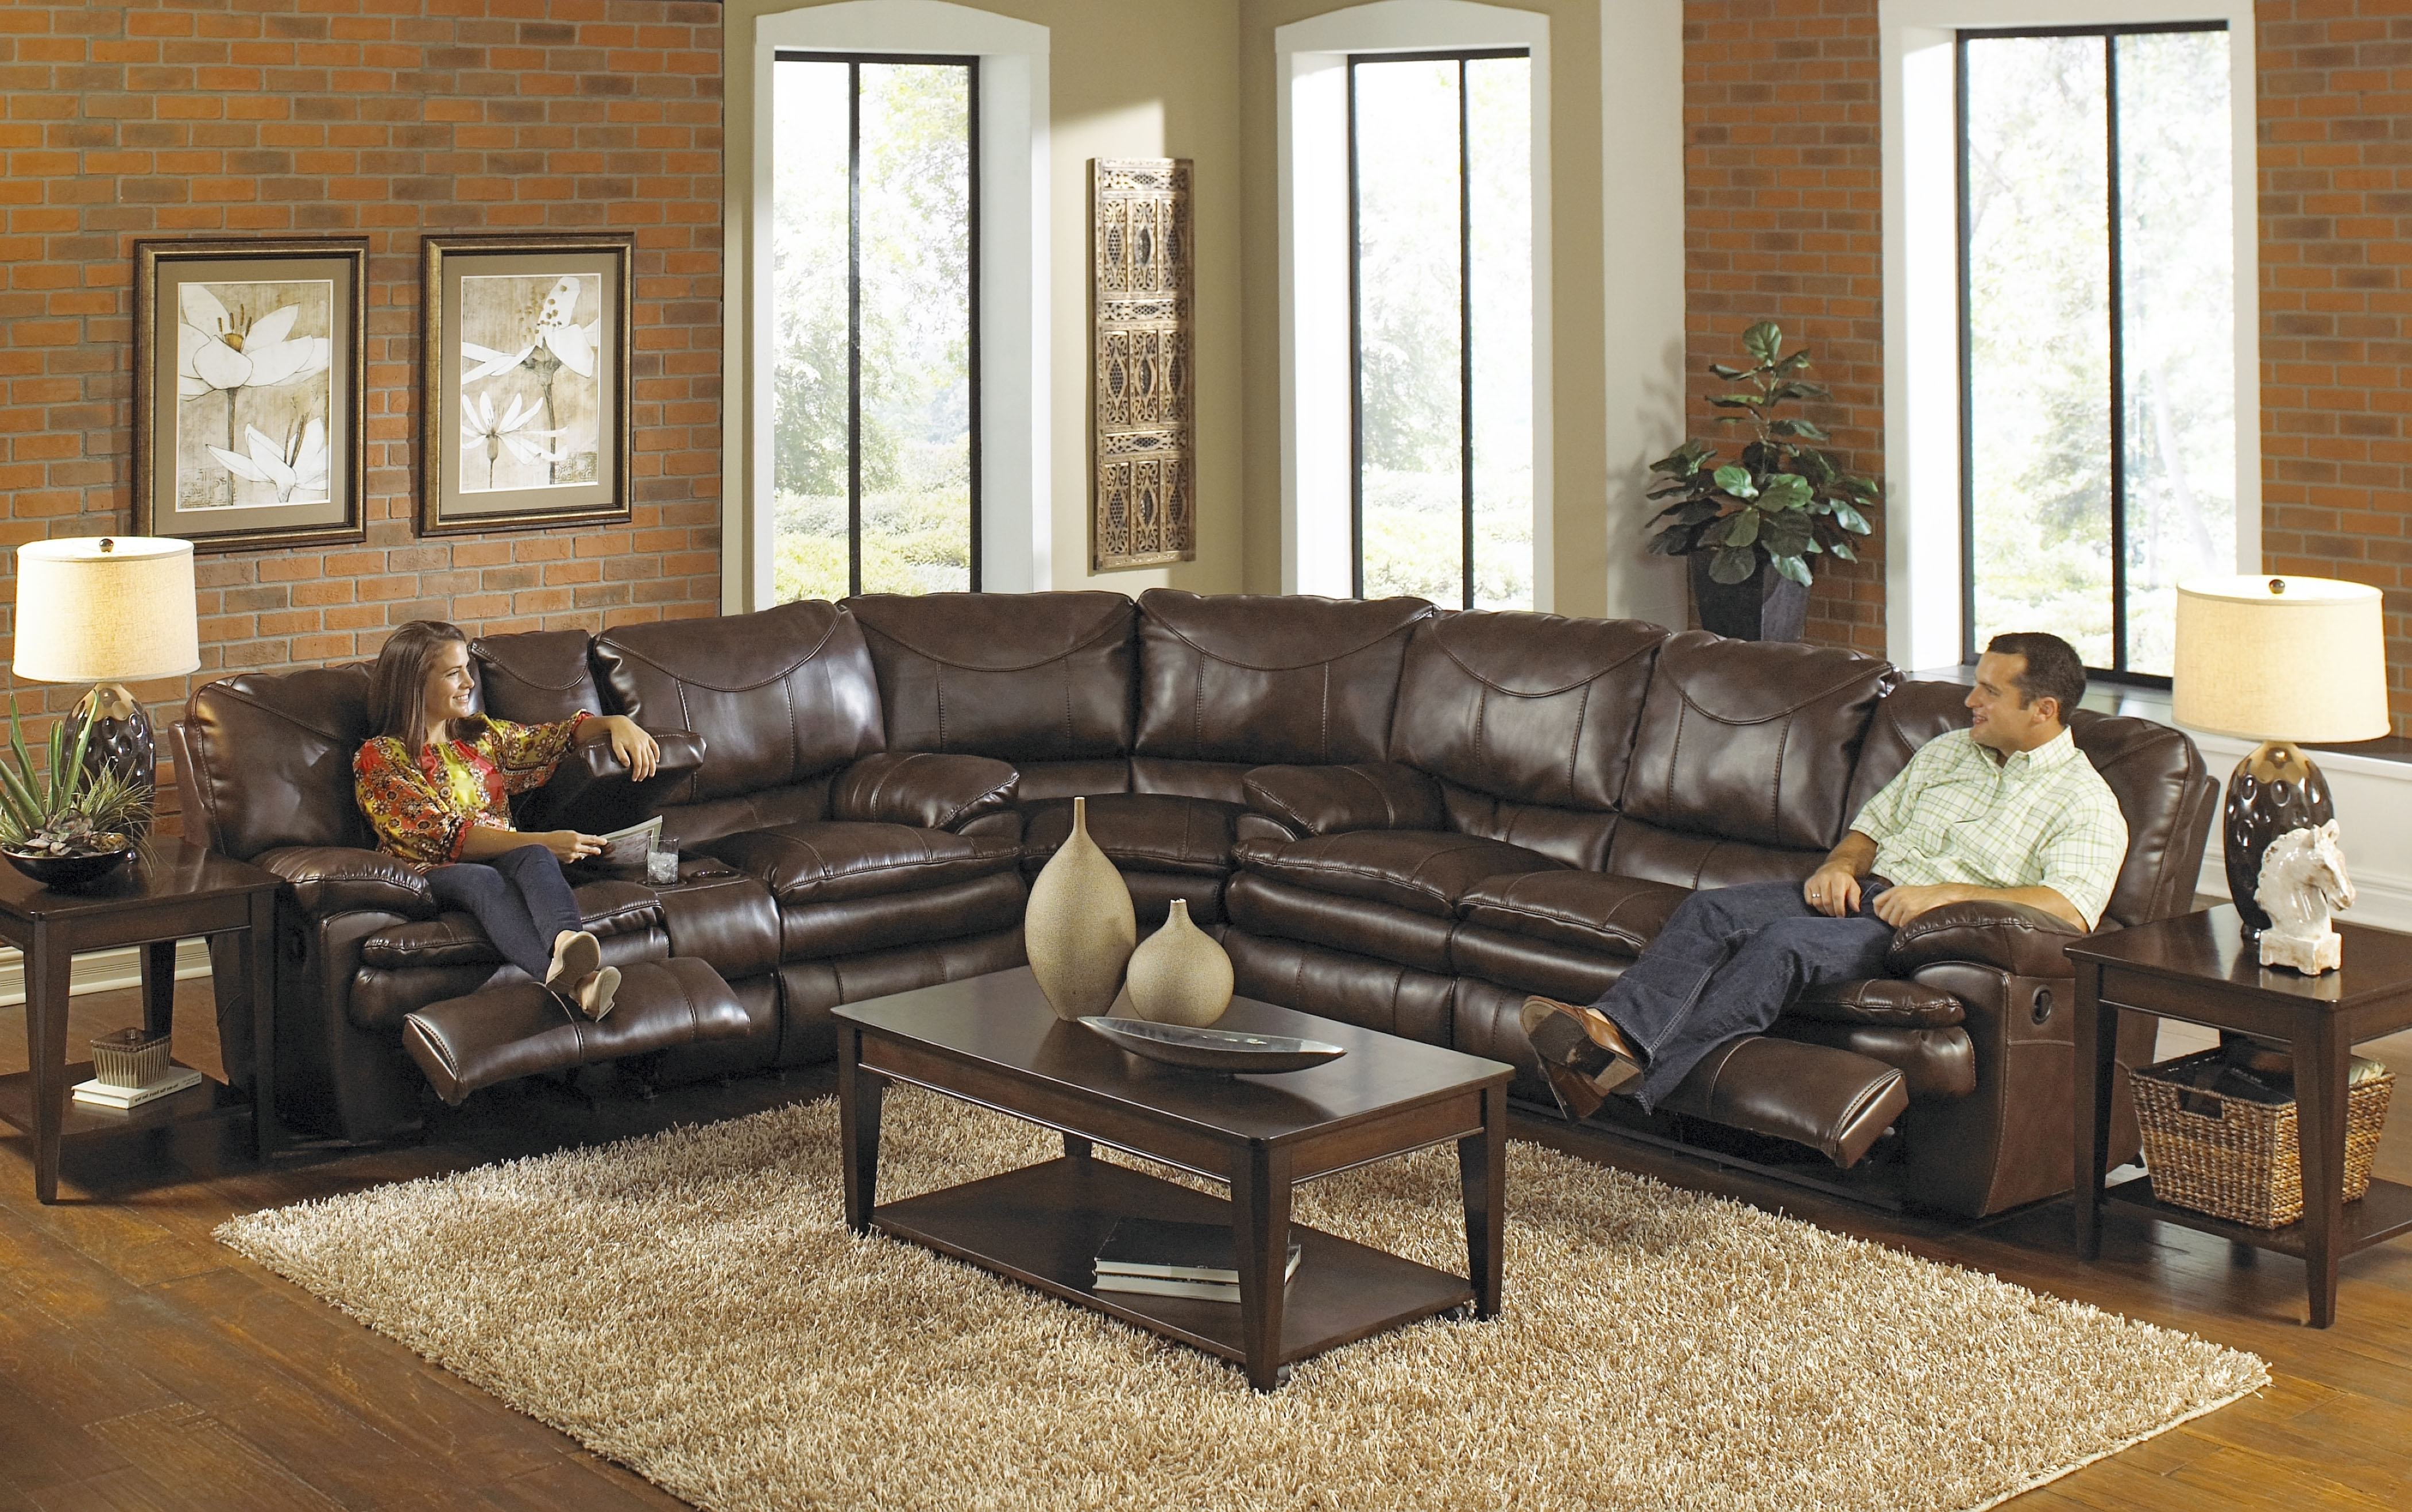 New Sectional Sofa With Recliner 76 For Your Sofa Design Ideas Throughout Most Up To Date Leather Recliner Sectional Sofas (View 12 of 15)